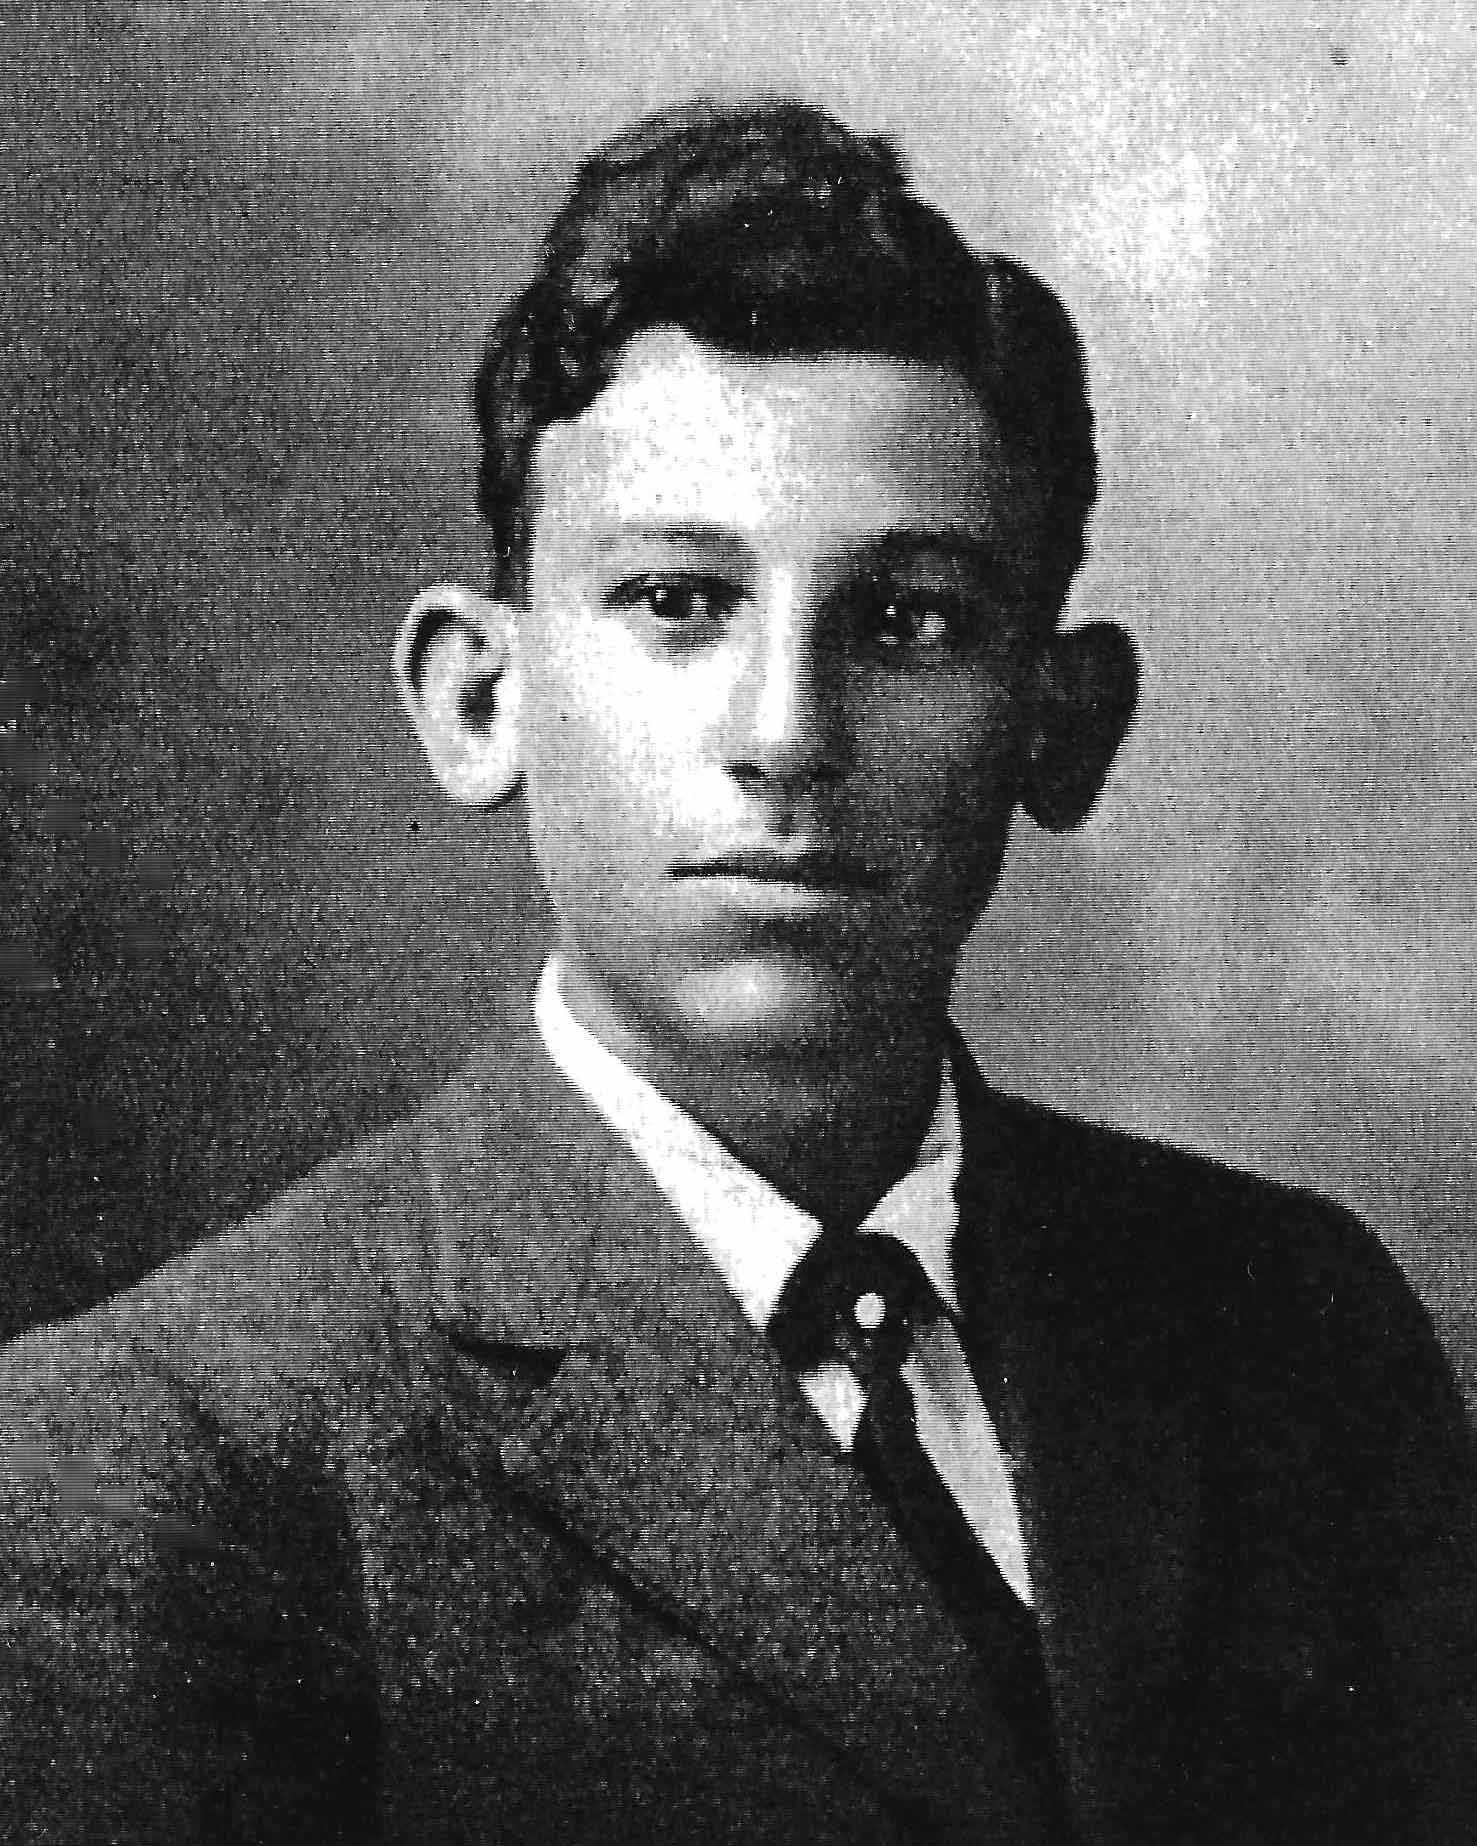 Sol Jones as a young man